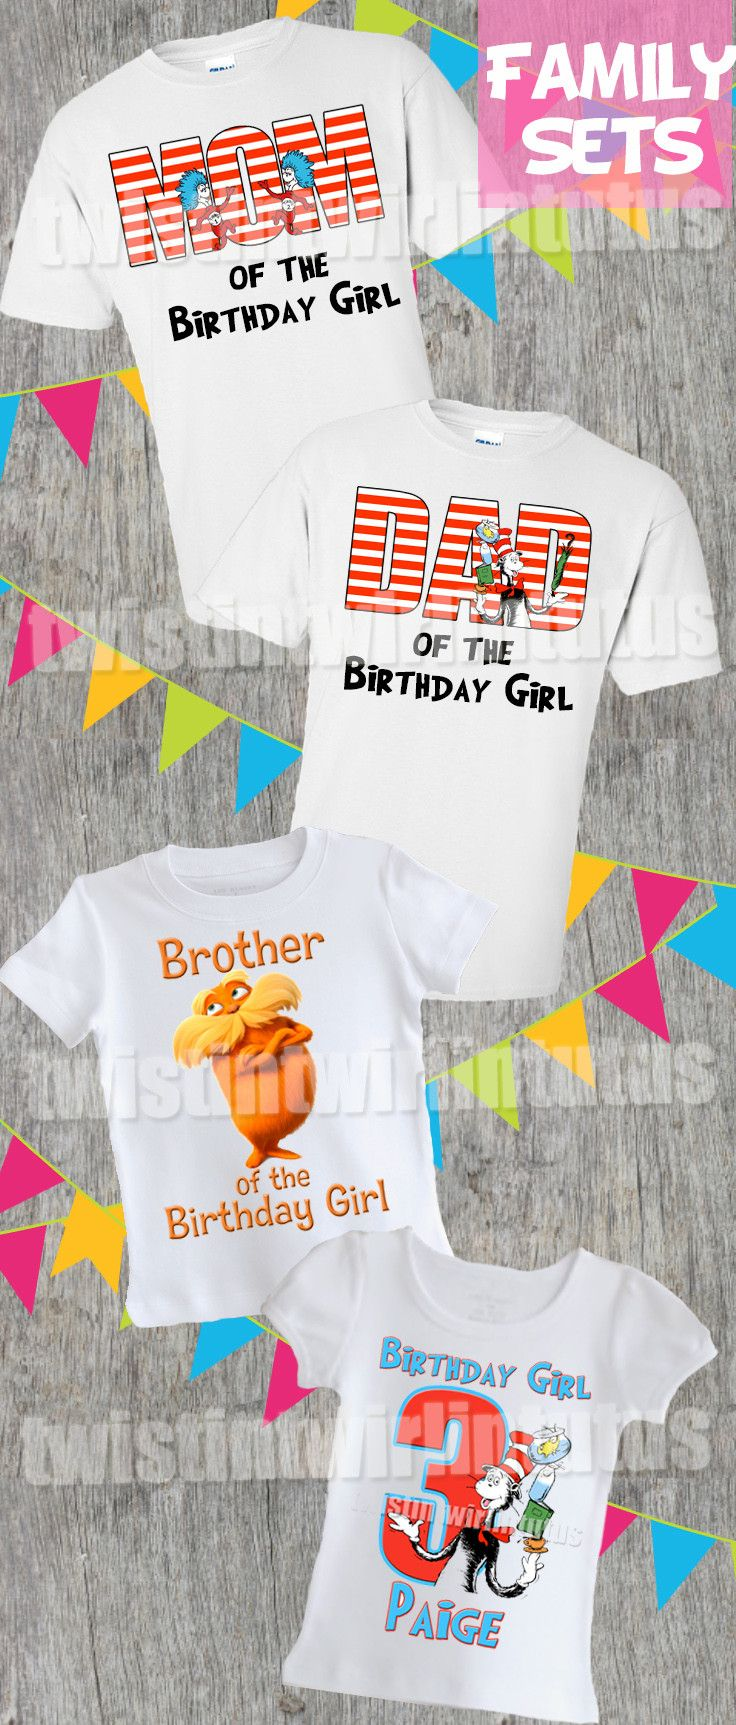 Cat in the Hat Family Set | Cat in the hat birthday party ideas | Cat in hat birthday shirts | Dr. Seuss Birthday Party Ideas | birthday ideas for girls | Birthday ideas for boys | Twistin Twirlin Tutus #drseussbirthday